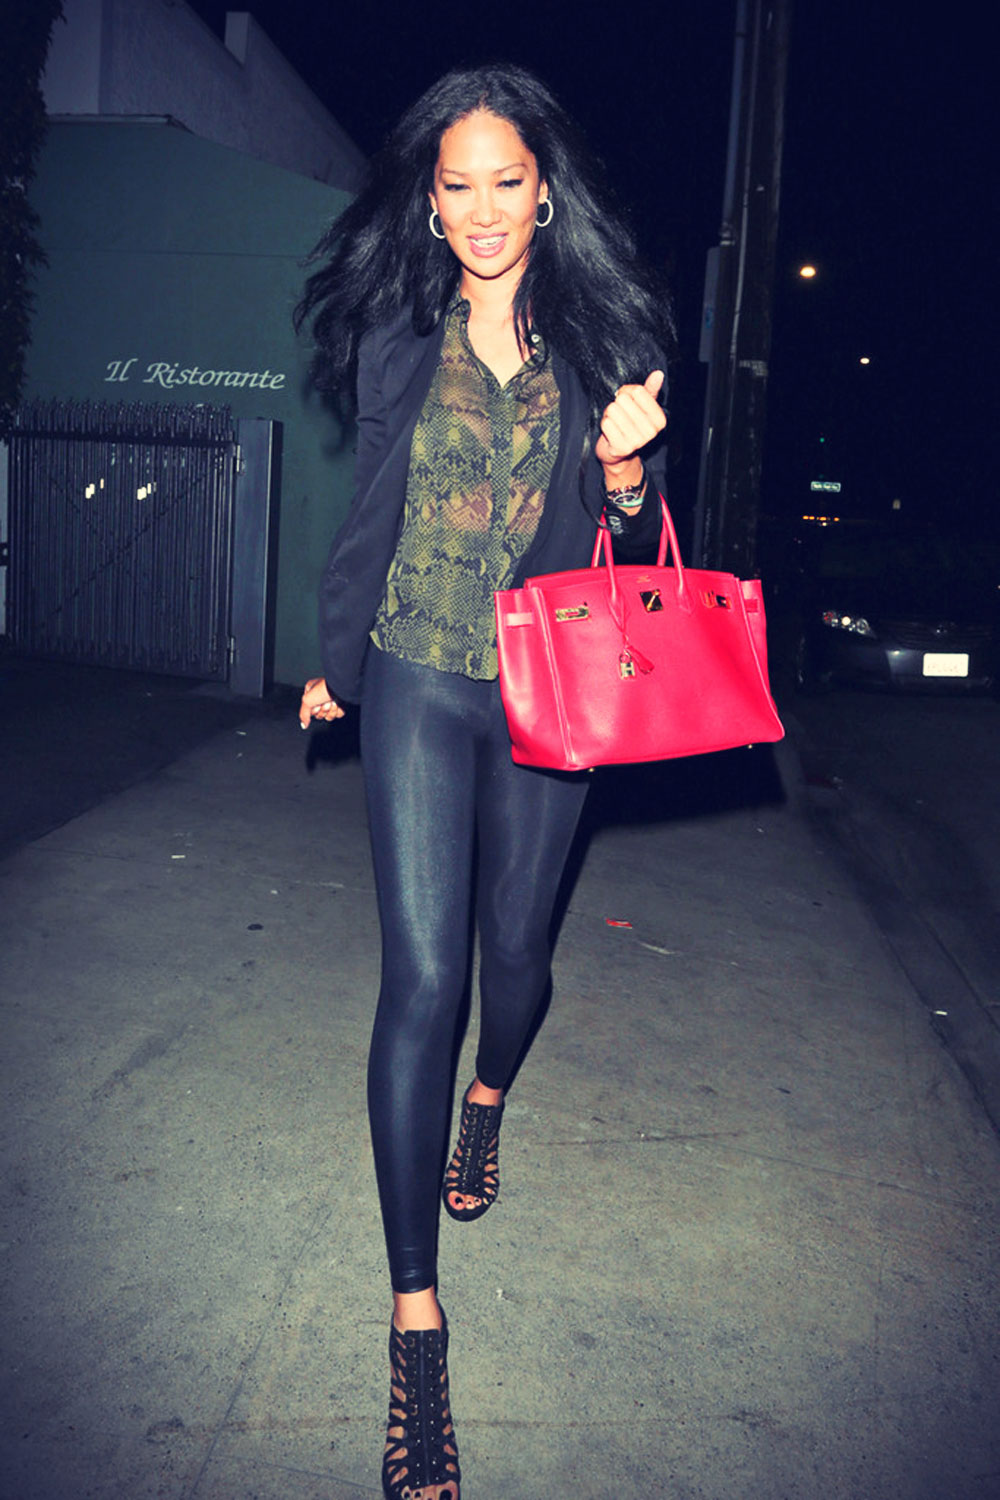 Kimora Lee Simmons leaves Giorgio Baldi